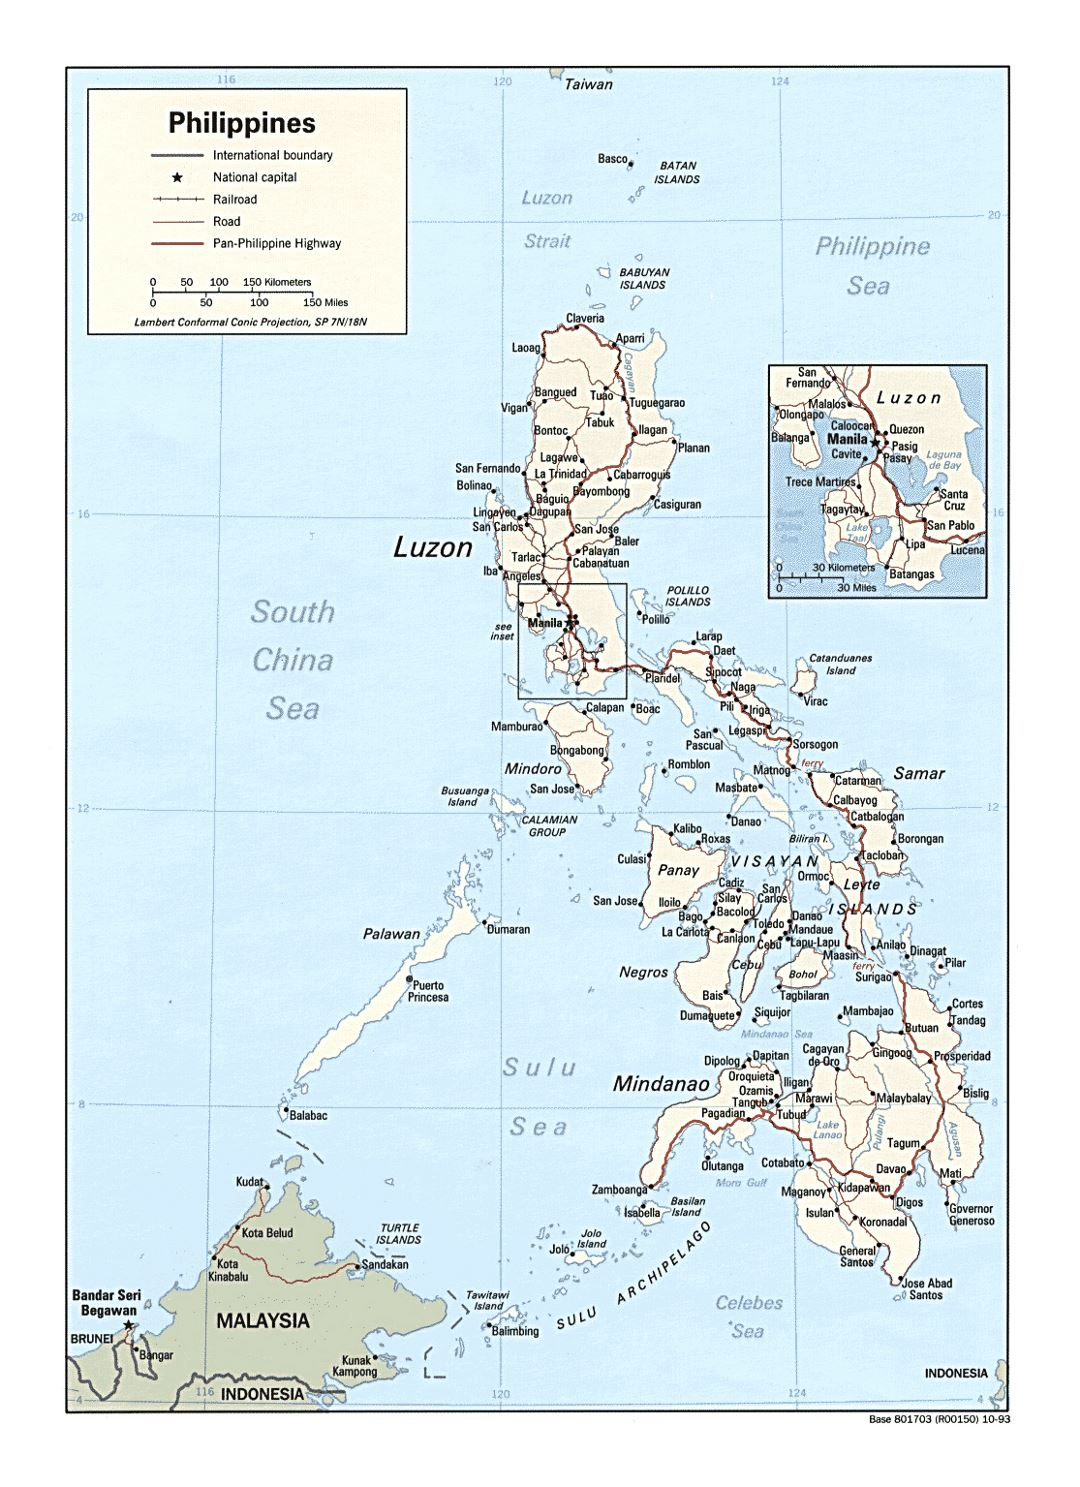 Detailed political map of Philippines with roads, railroads and major cities - 1993